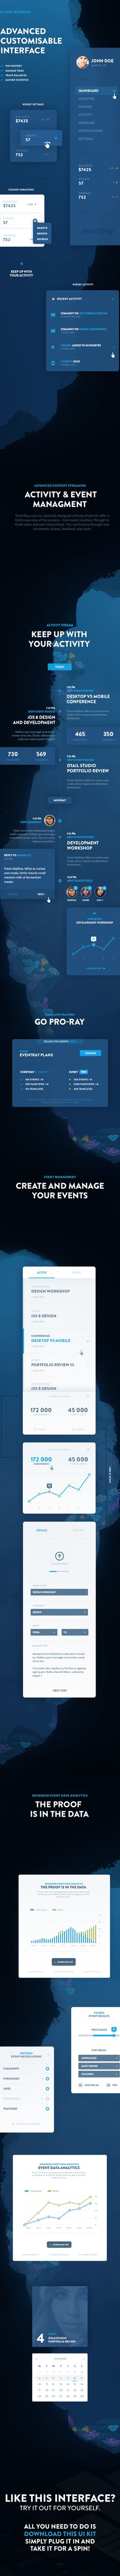 EventRay UI KIT - Free Download on Behance